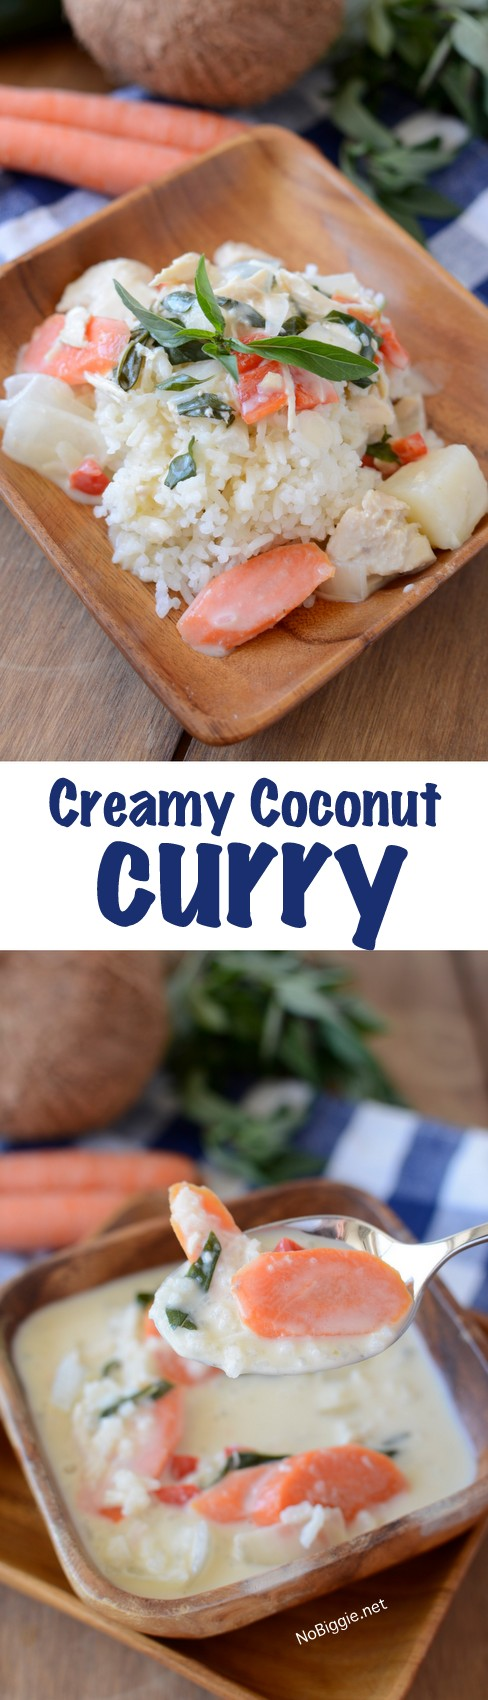 http://www.nobiggie.net/wp-content/uploads/2015/11/creamy-coconut-curry-this-recipe-is-just-like-eating-out-and-so-easy-NoBiggie.net_.jpg